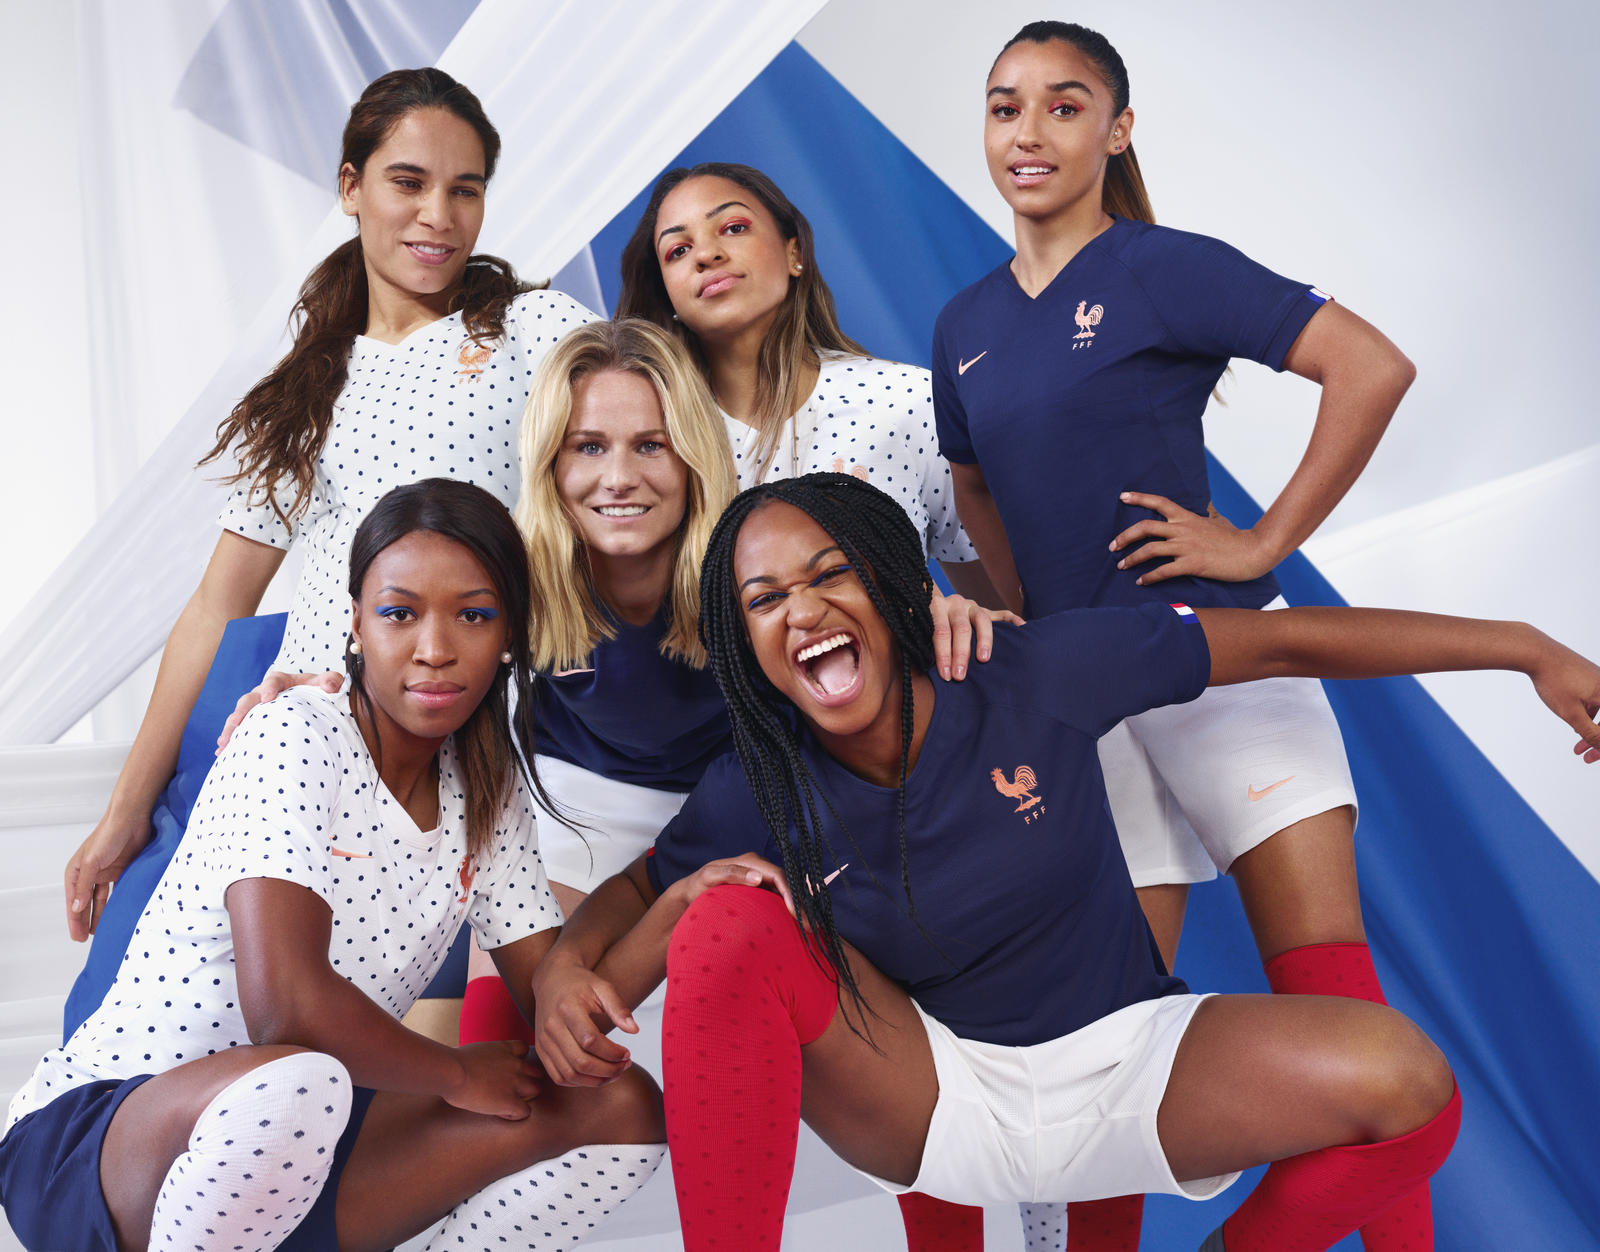 on sale cb765 58614 France 2019 Nike Women's Football Kit - Nike News